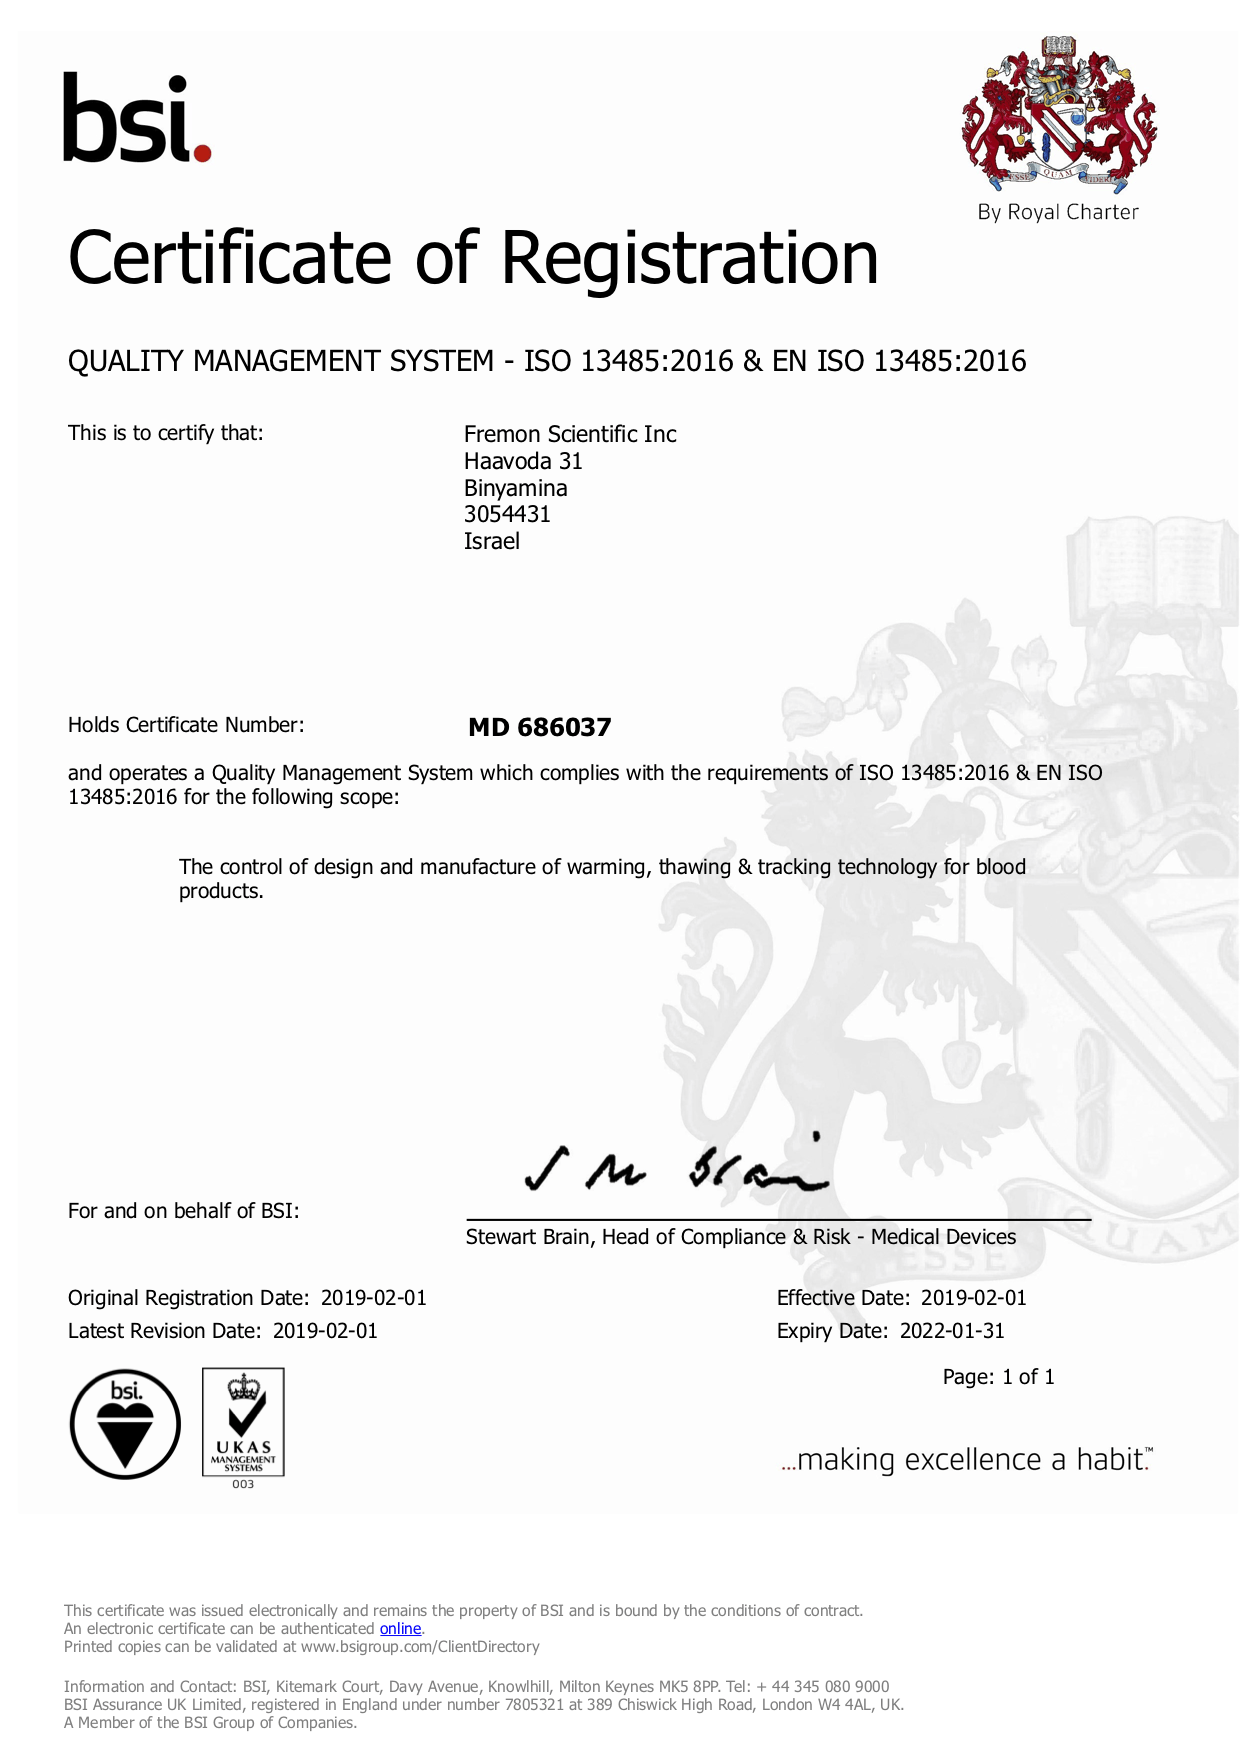 ISO Certificate MD 686037